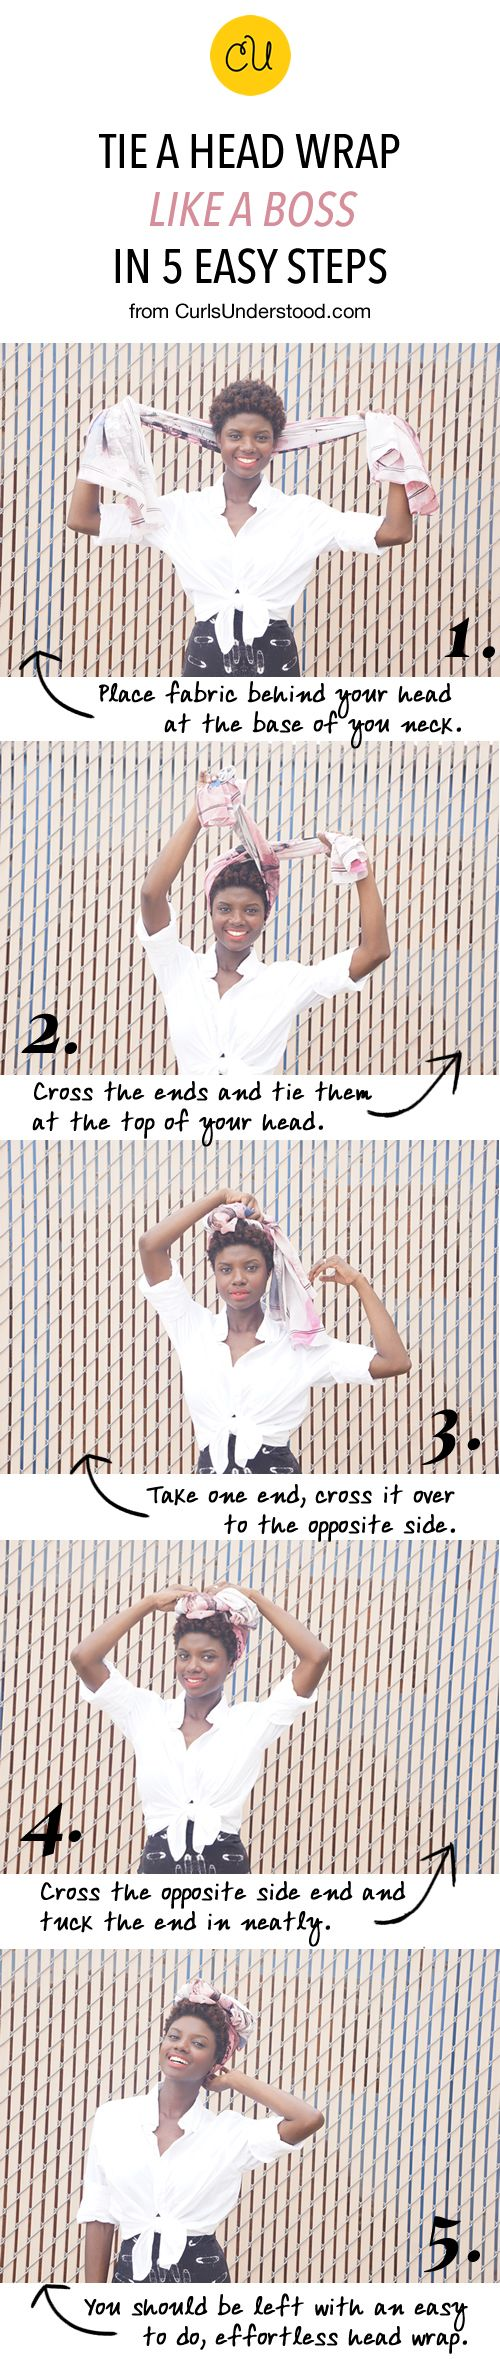 Read the full how-to here @ http://curlsunderstood.com/how-to-tie-a-headwrap  PLEASE DO NOT USE IMAGE WITHOUT CREDITING CurlsUnderstood.com. xx